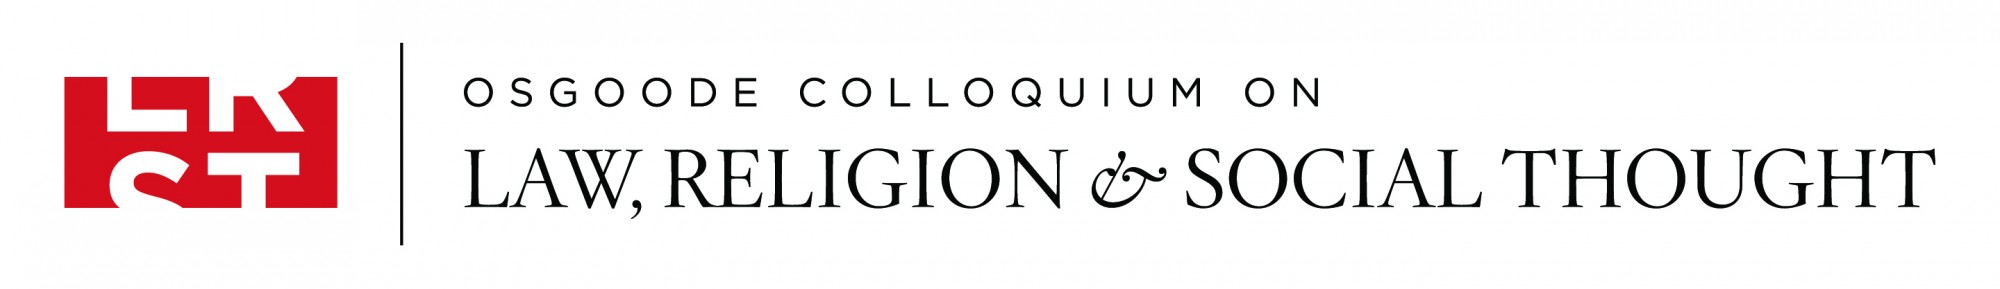 Osgoode Colloquium on Law, Religion & Social Thought